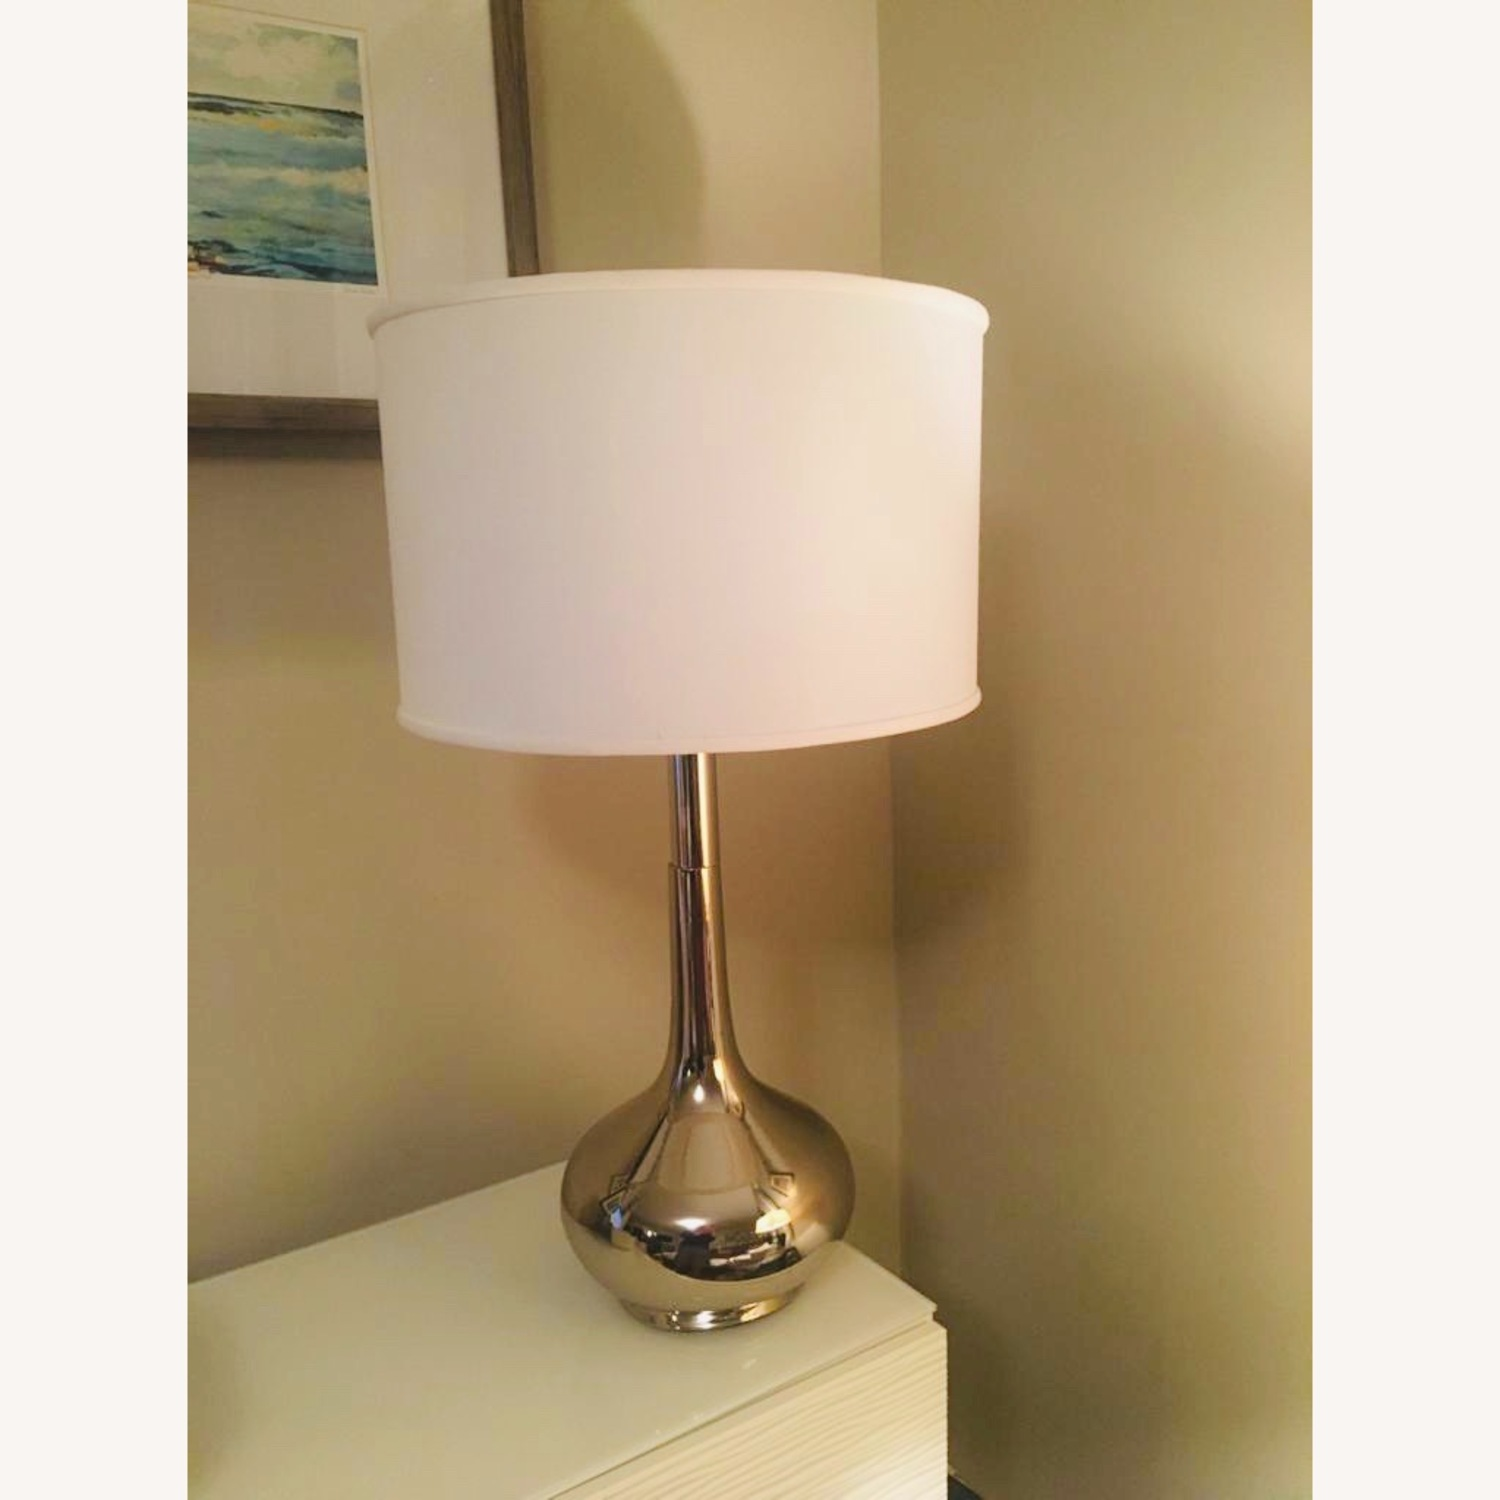 Home Goods Metal Based Lamps & Large Drum Shades (2) - image-5